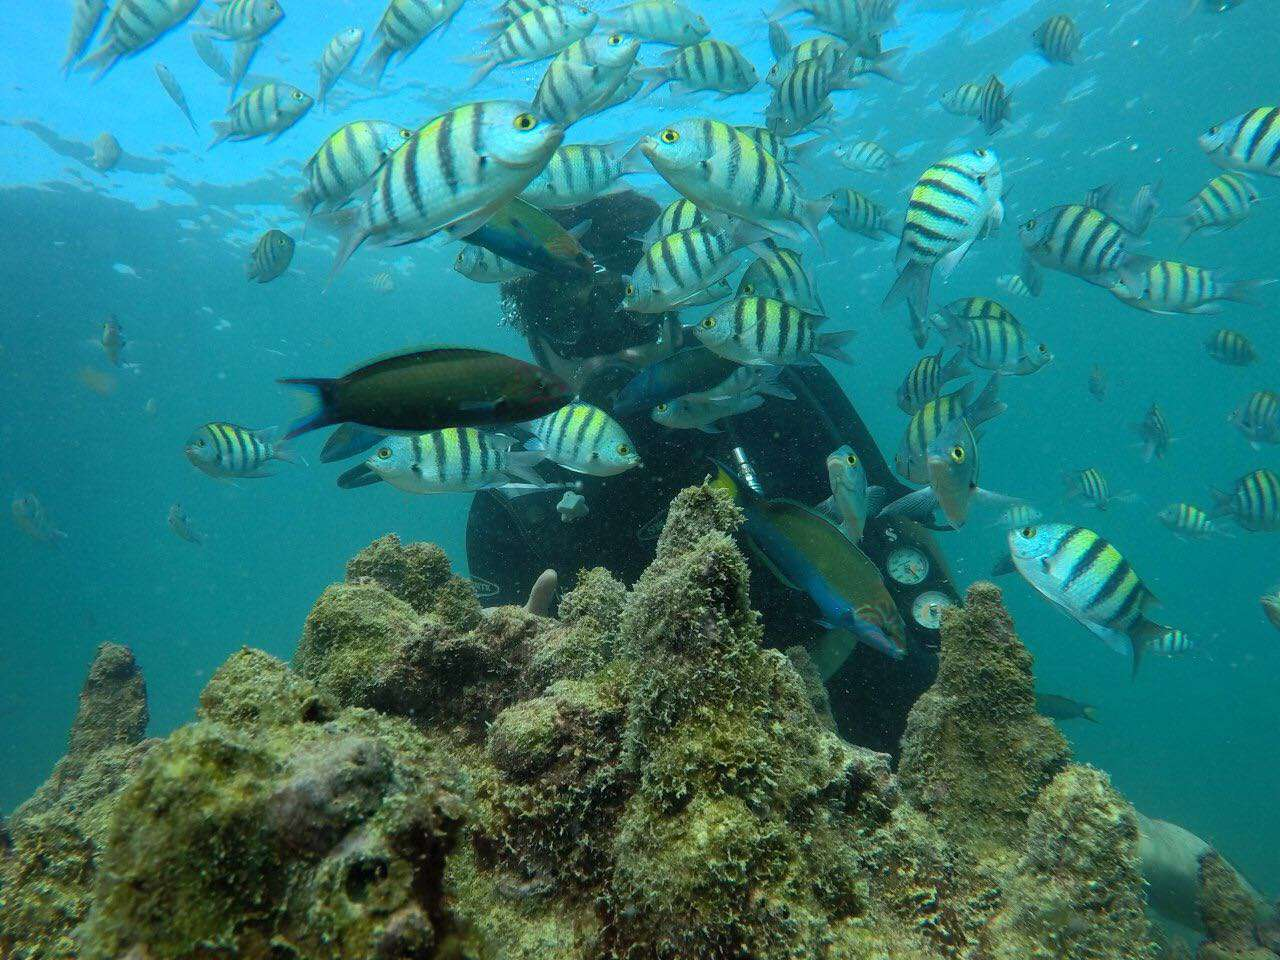 The Best Scuba Diving Destination in Persian Gulf: Try The Underwater Experience in Qeshm Island